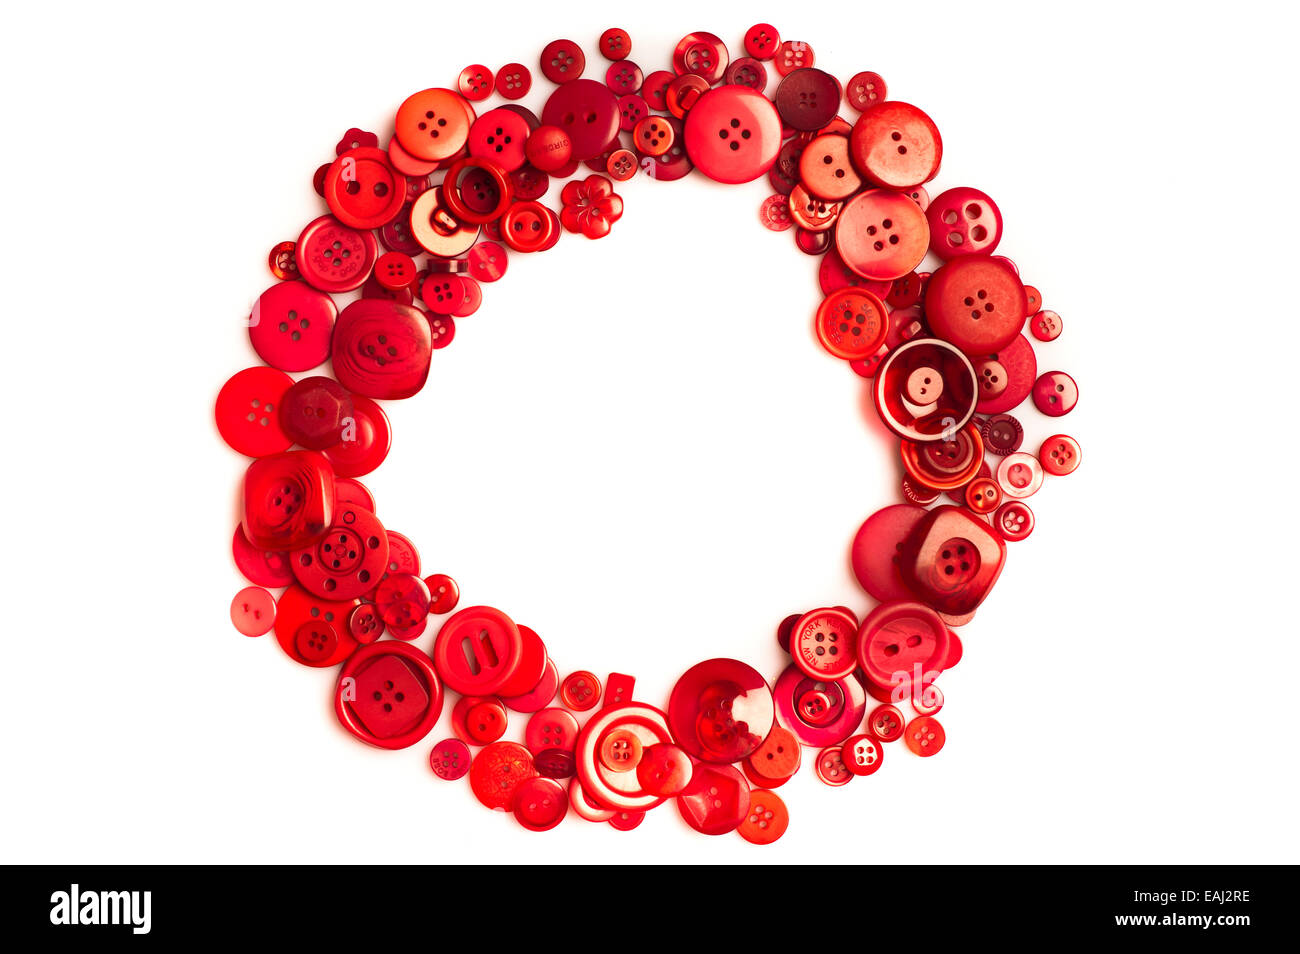 red circle on white made with buttons - Stock Image